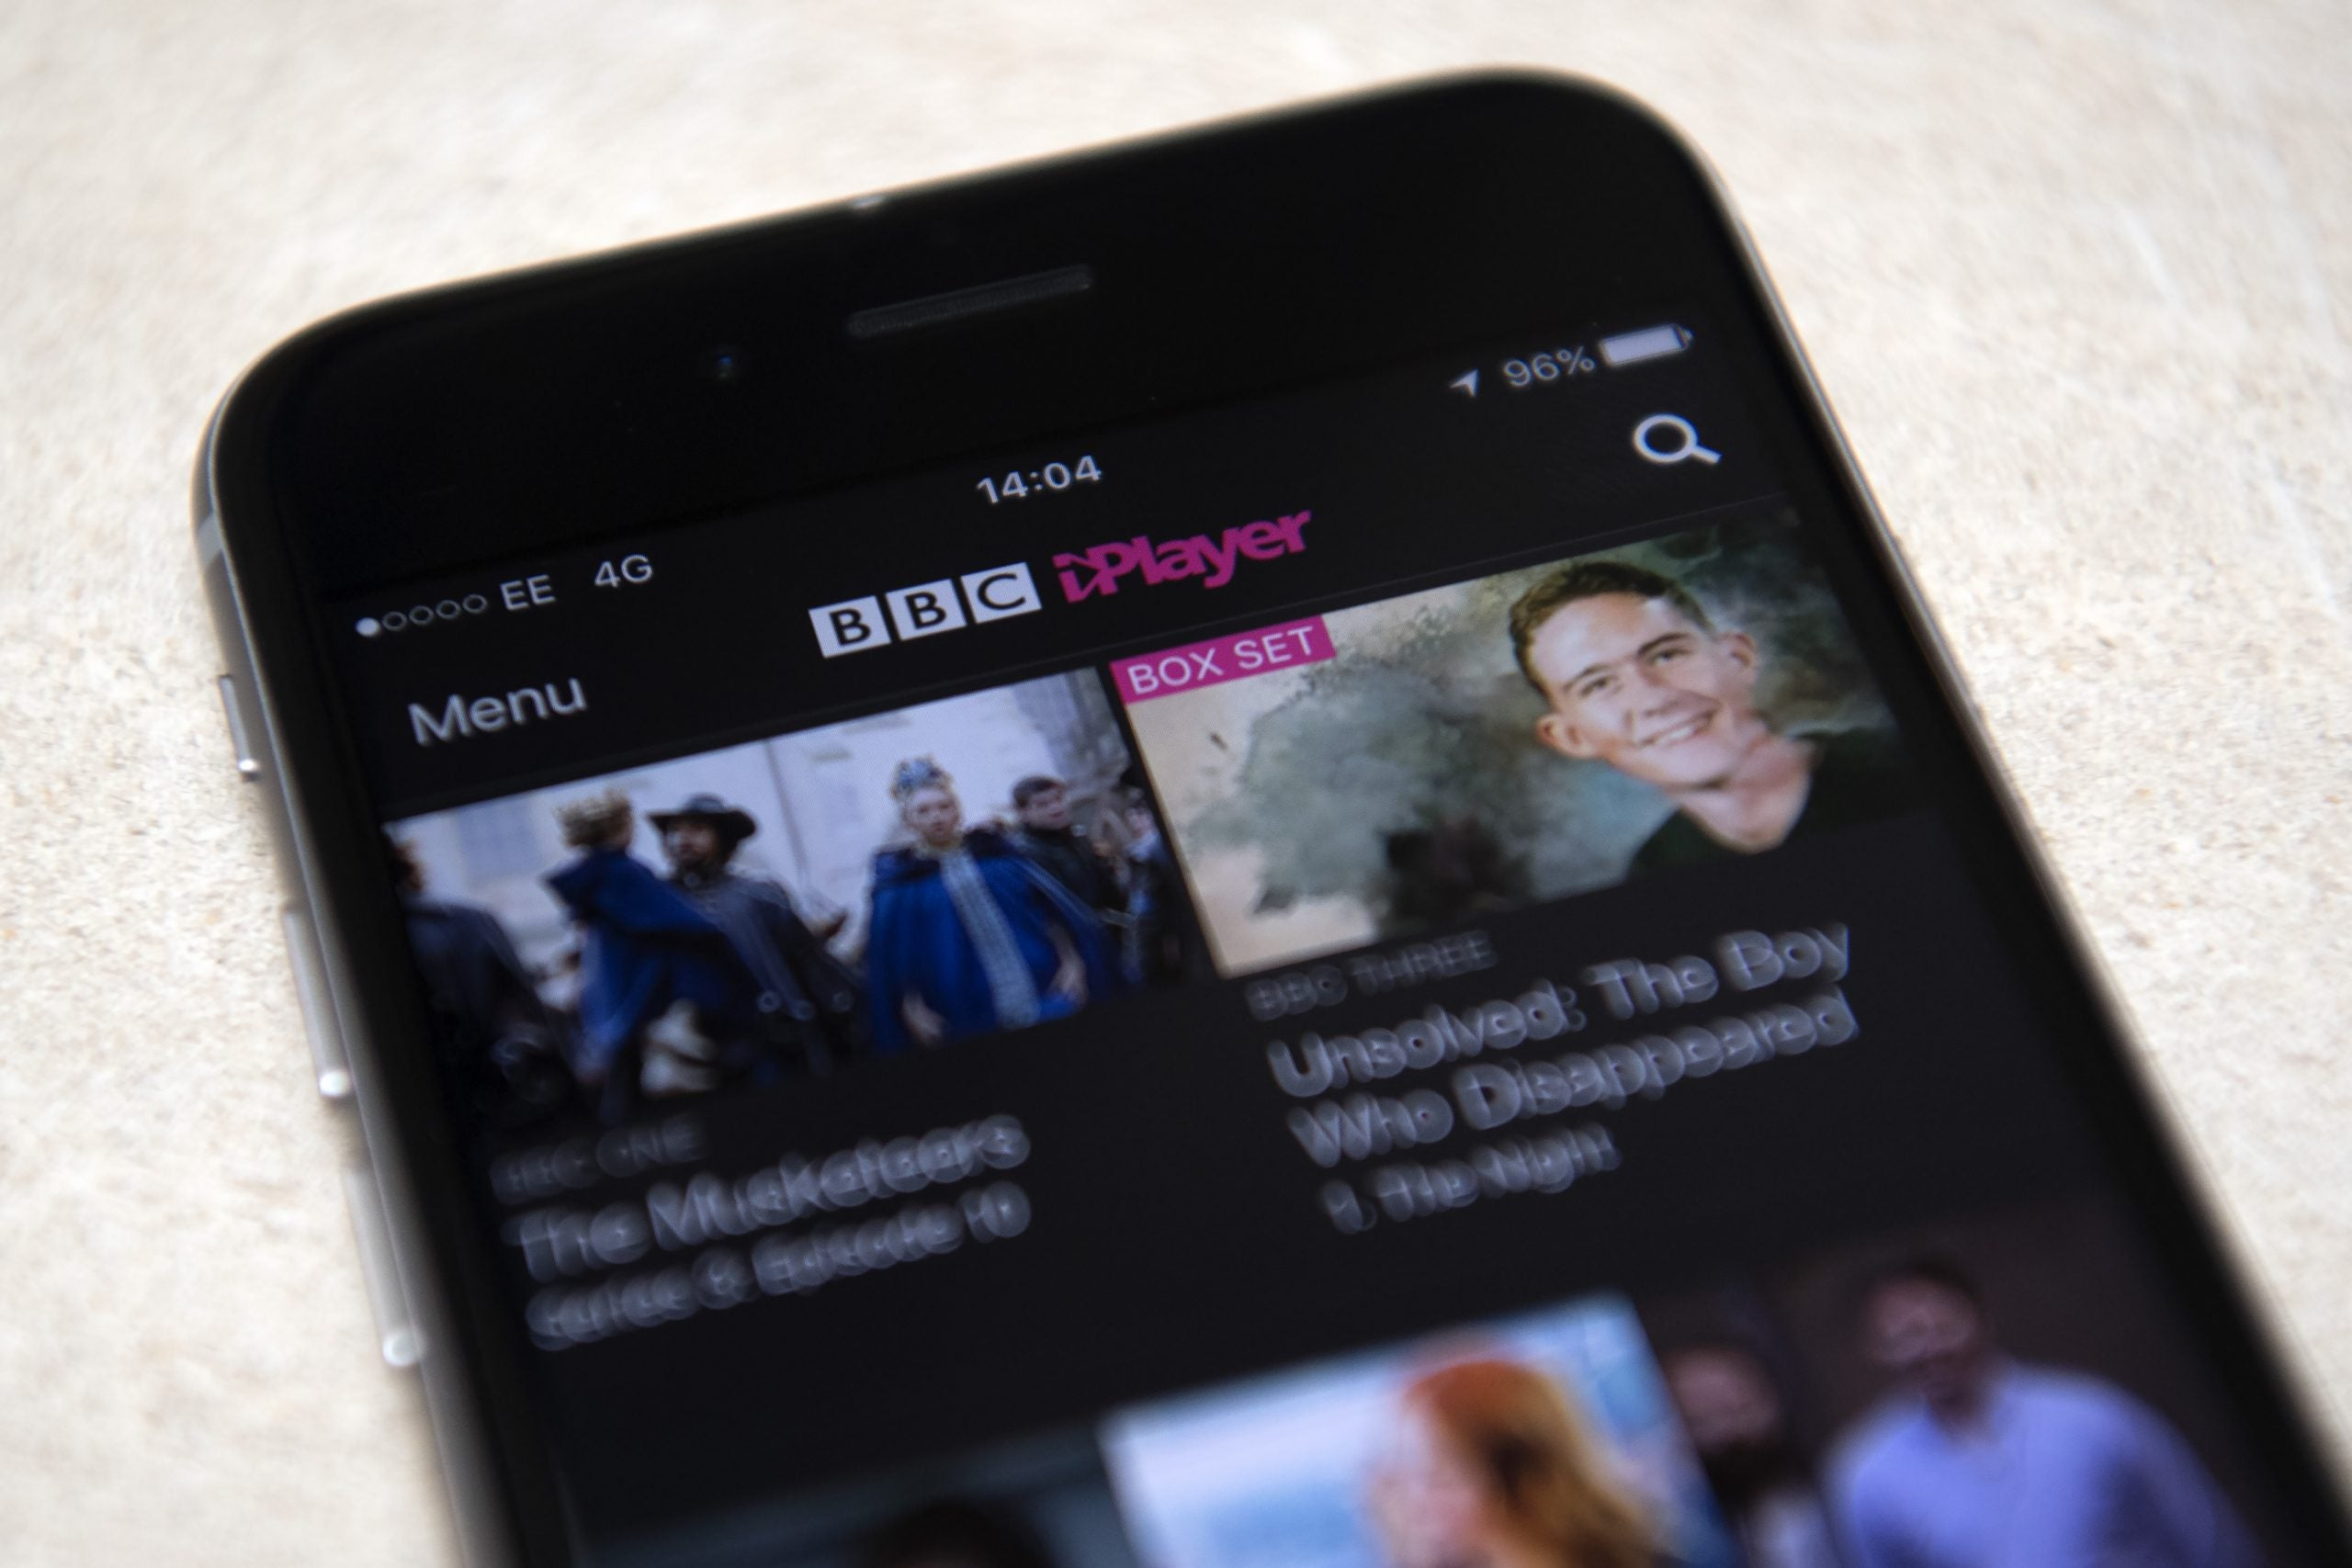 There are very good reasons why the BBC can't just load iPlayer with archive content